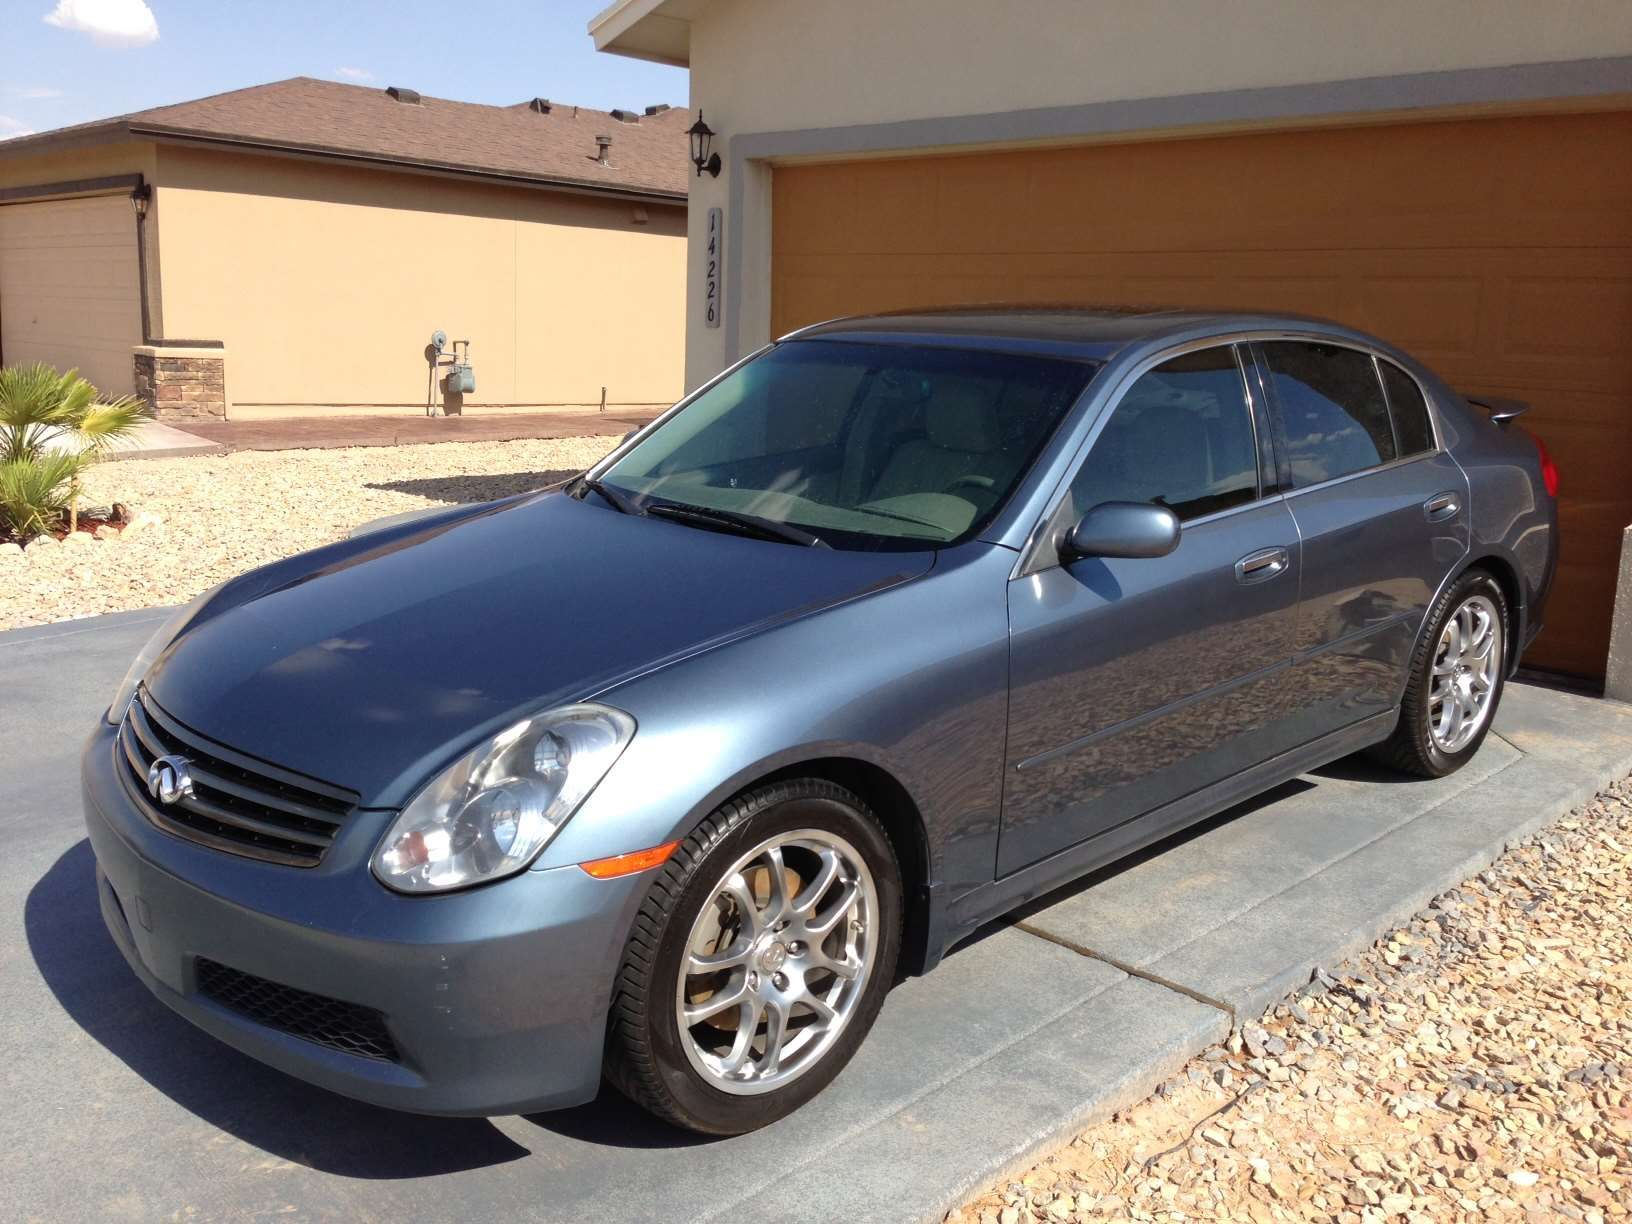 Make: Infiniti Model: G35 Year: 2005 Body Style: Sedan Exterior Color: